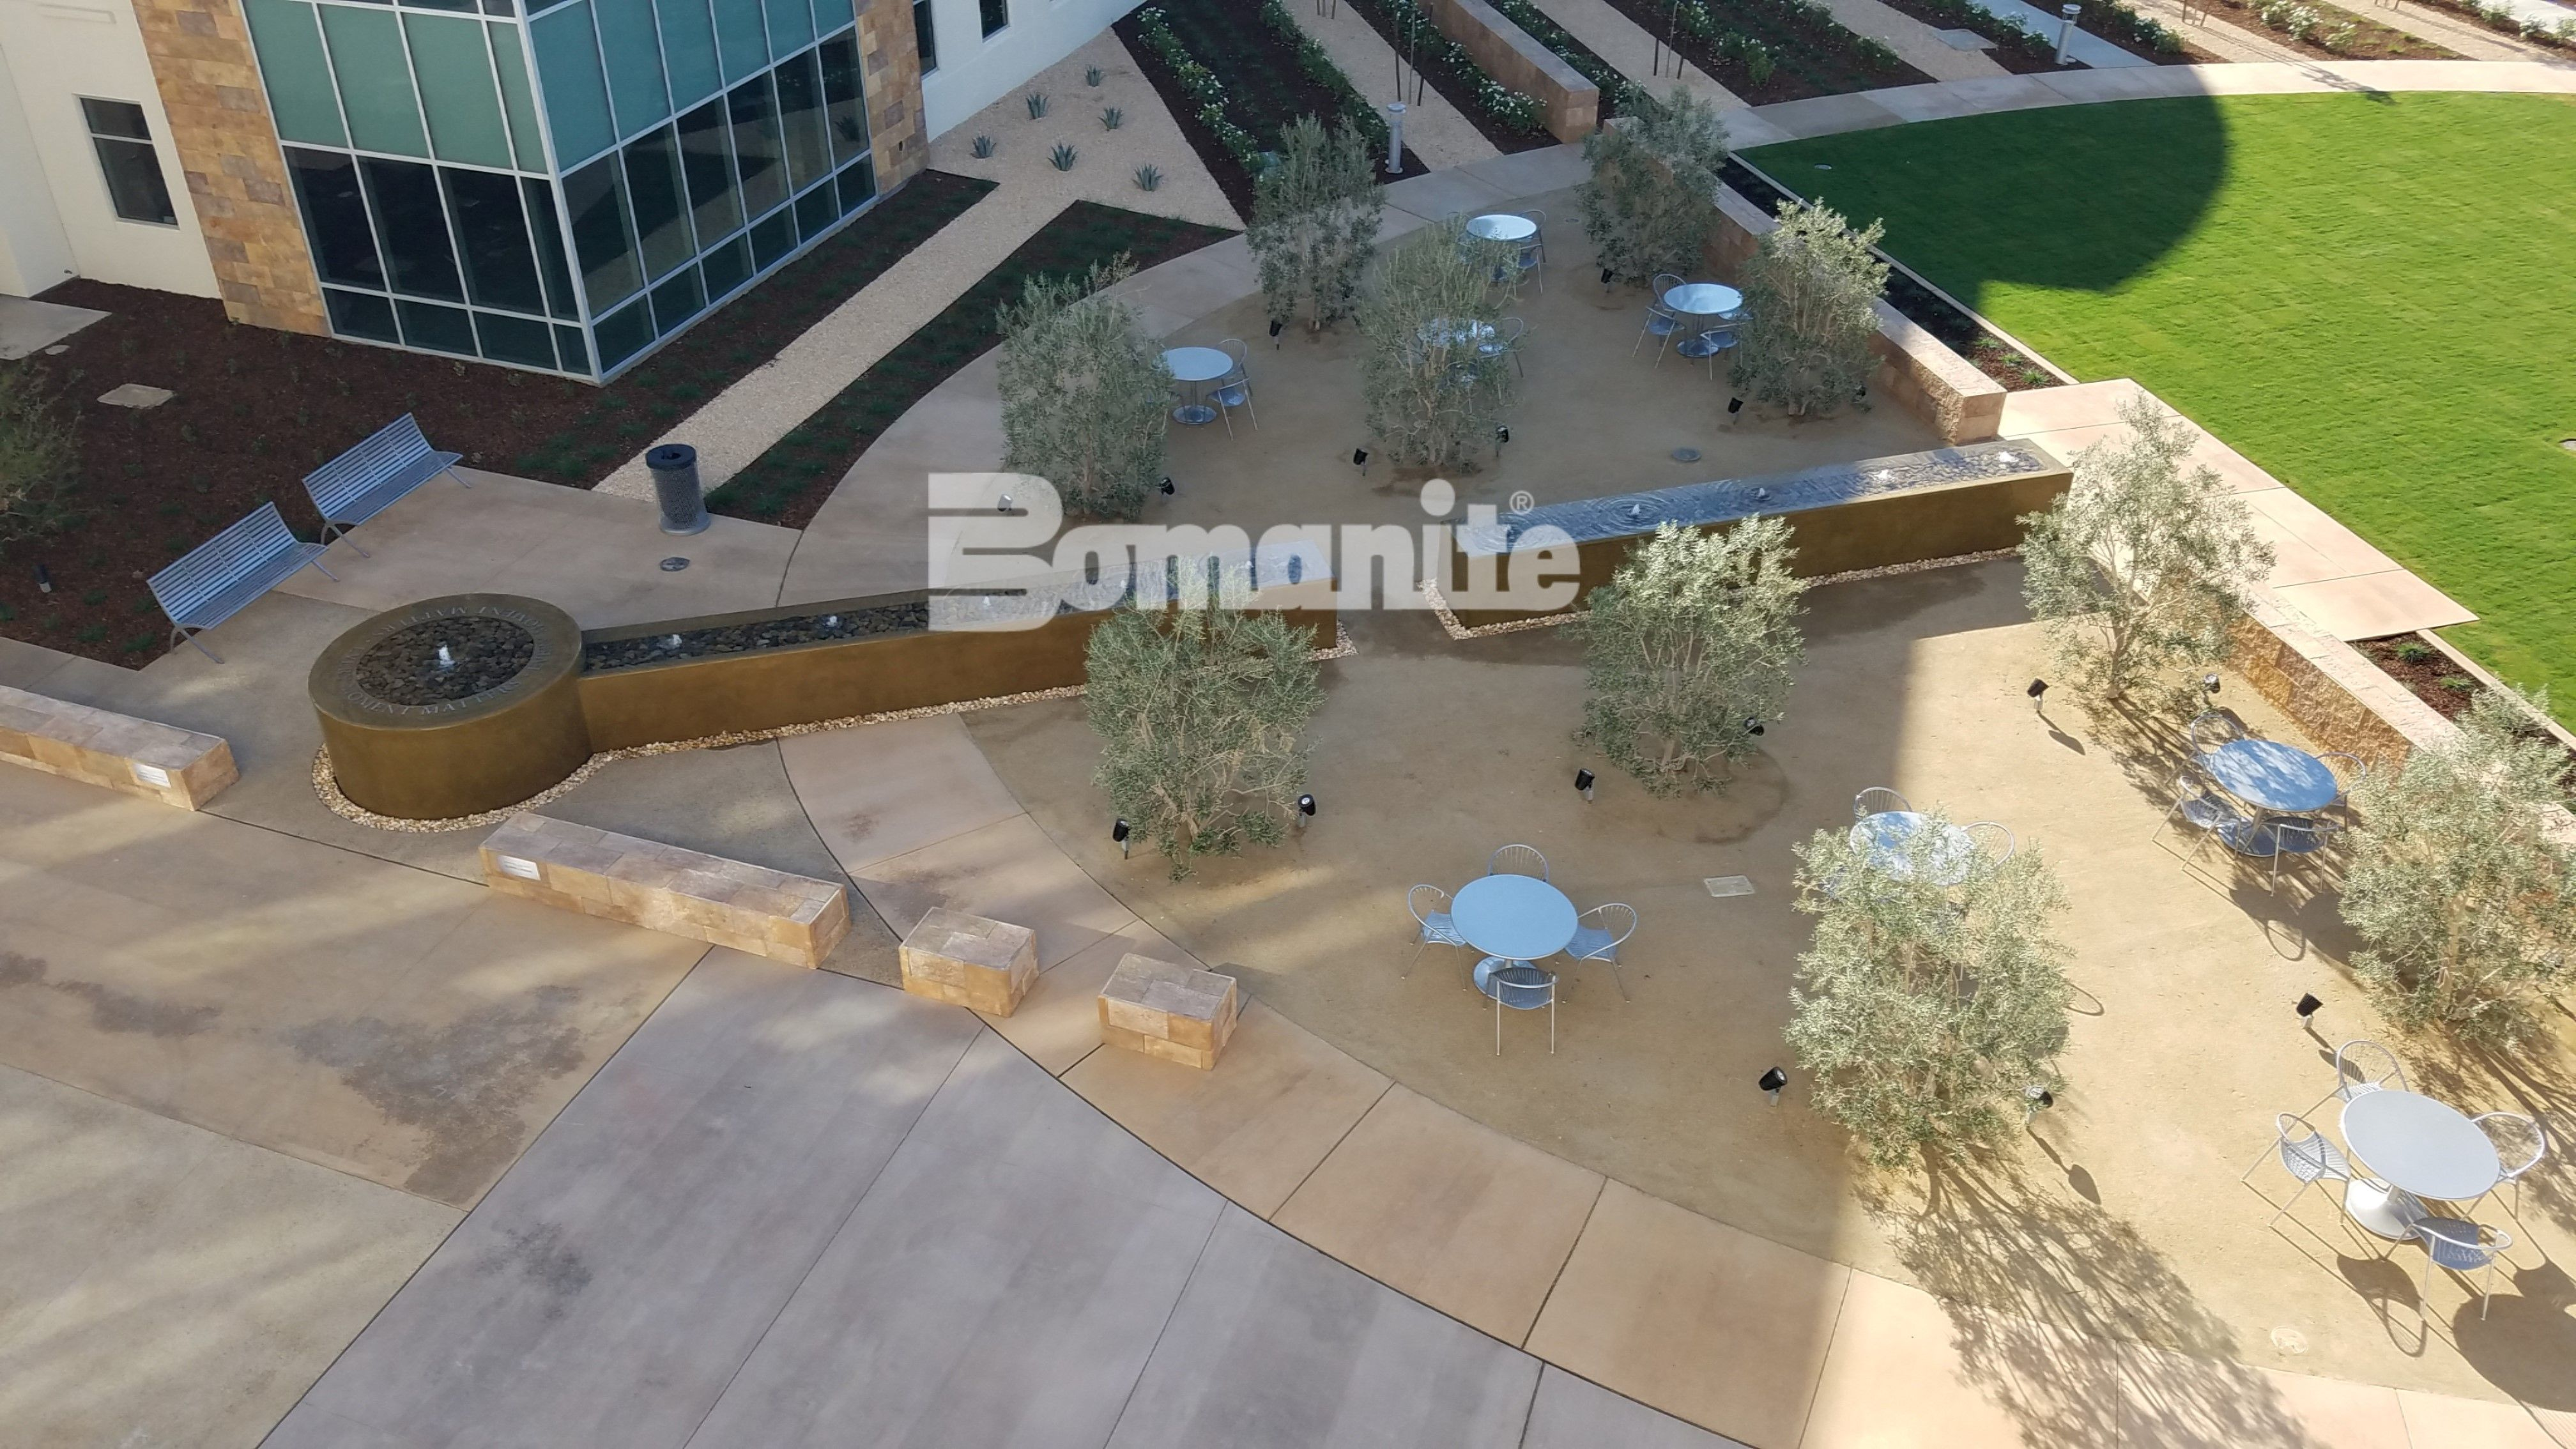 Aerial view of te Clovis Cancer Institute and Hospital showing the award winning fountain constructed with Bomanite Coloration Systems decorative cement in Clovis, CA.